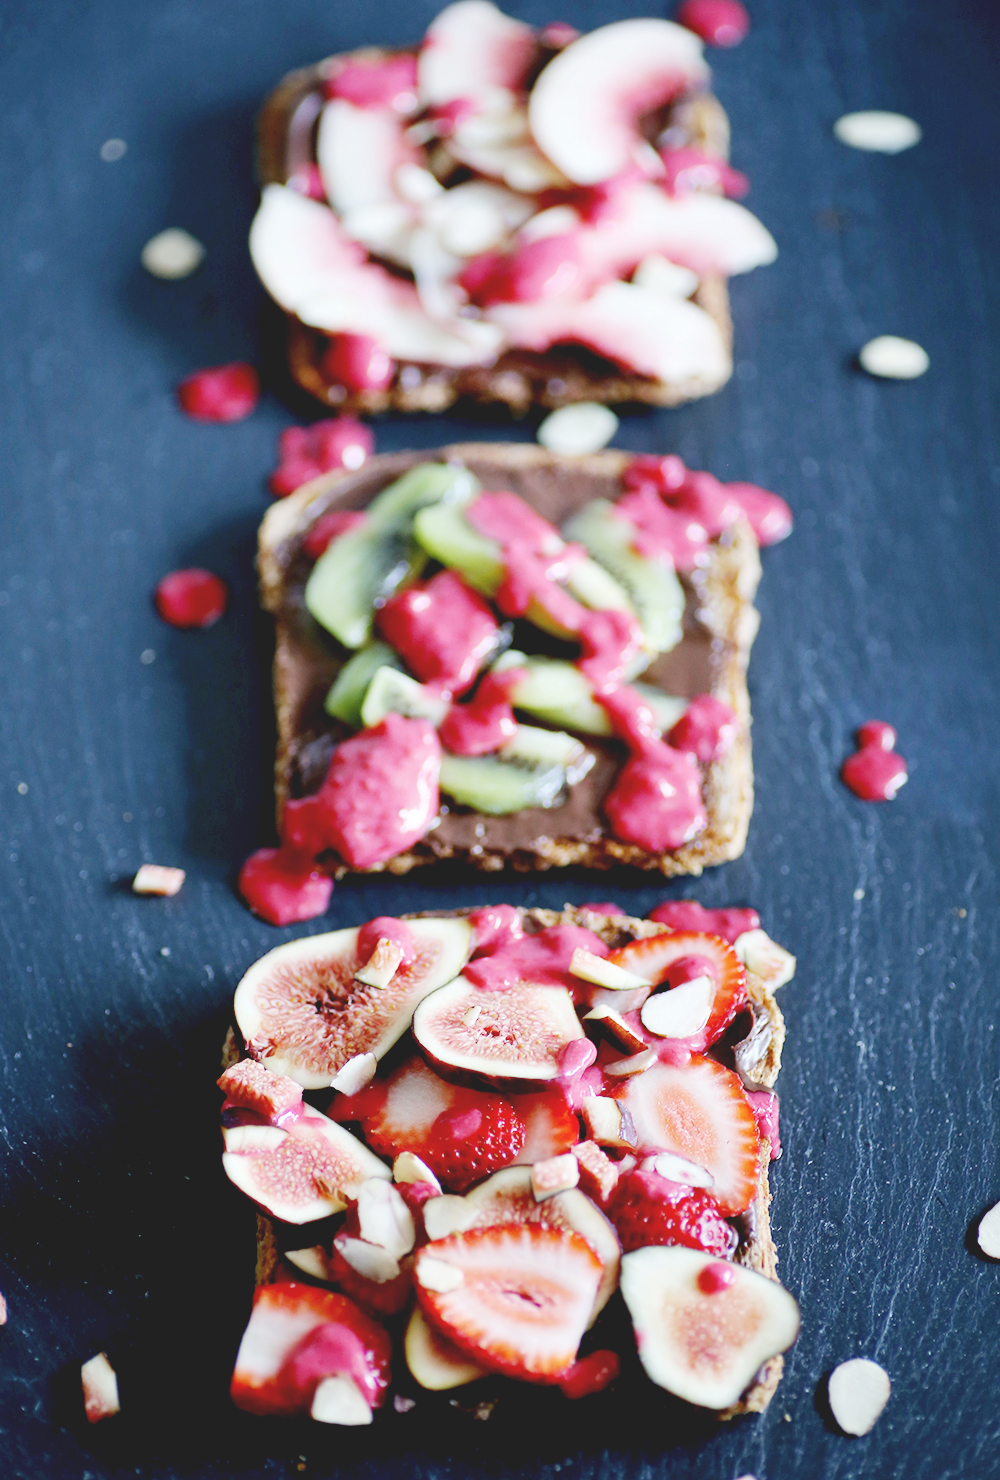 Sweet toast with Chocolate Almond Butter from Trader Joe's. Top with your favorite fruit and a yummy homemade raspberry coconut cream. Can be eaten for breakfast, as a snack or after dinner dessert.